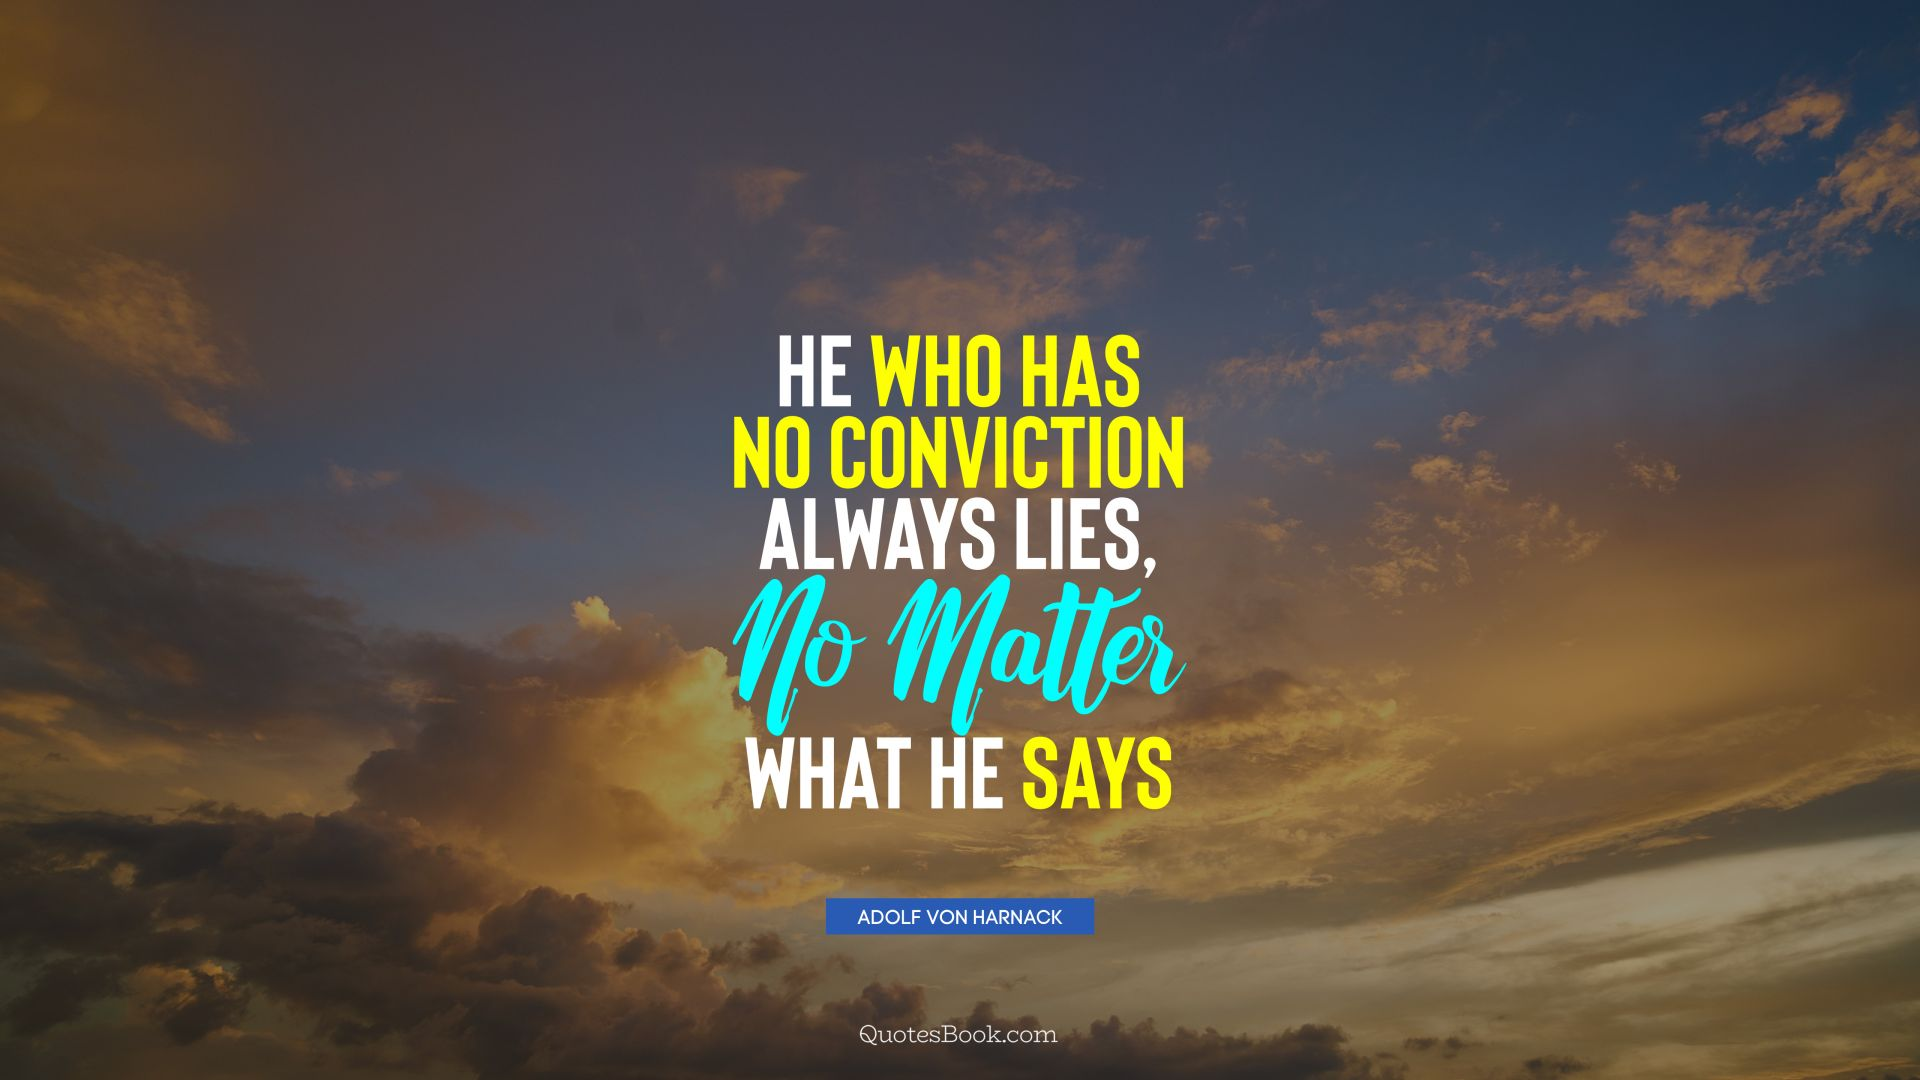 He who has no conviction always lies, no matter what he says. - Quote by Adolf von Harnack